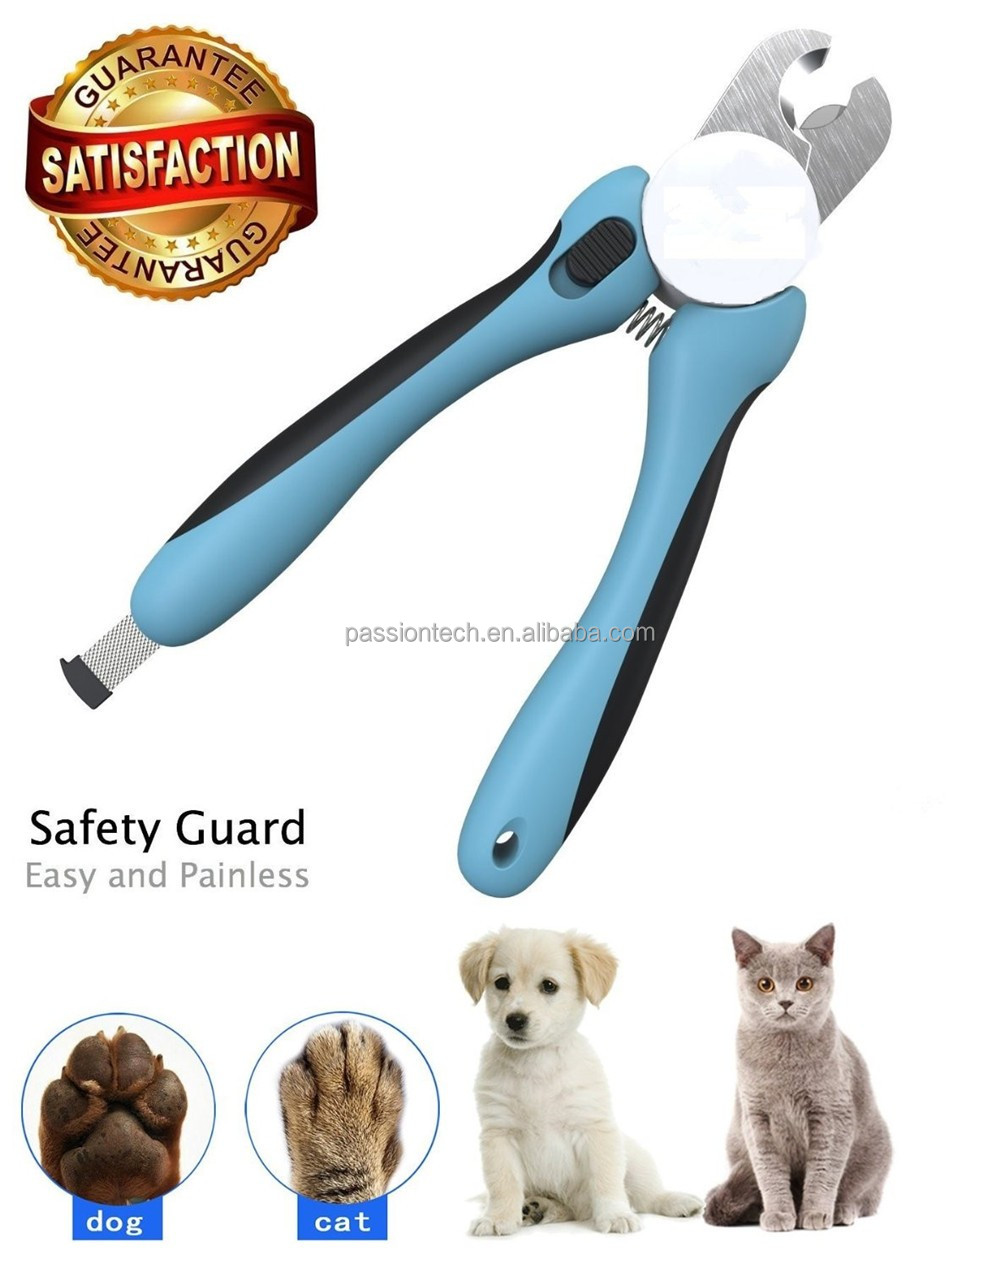 Professional Nail Trimmer for <strong>dogs</strong>,pet nail gromming set,cat nail clipper